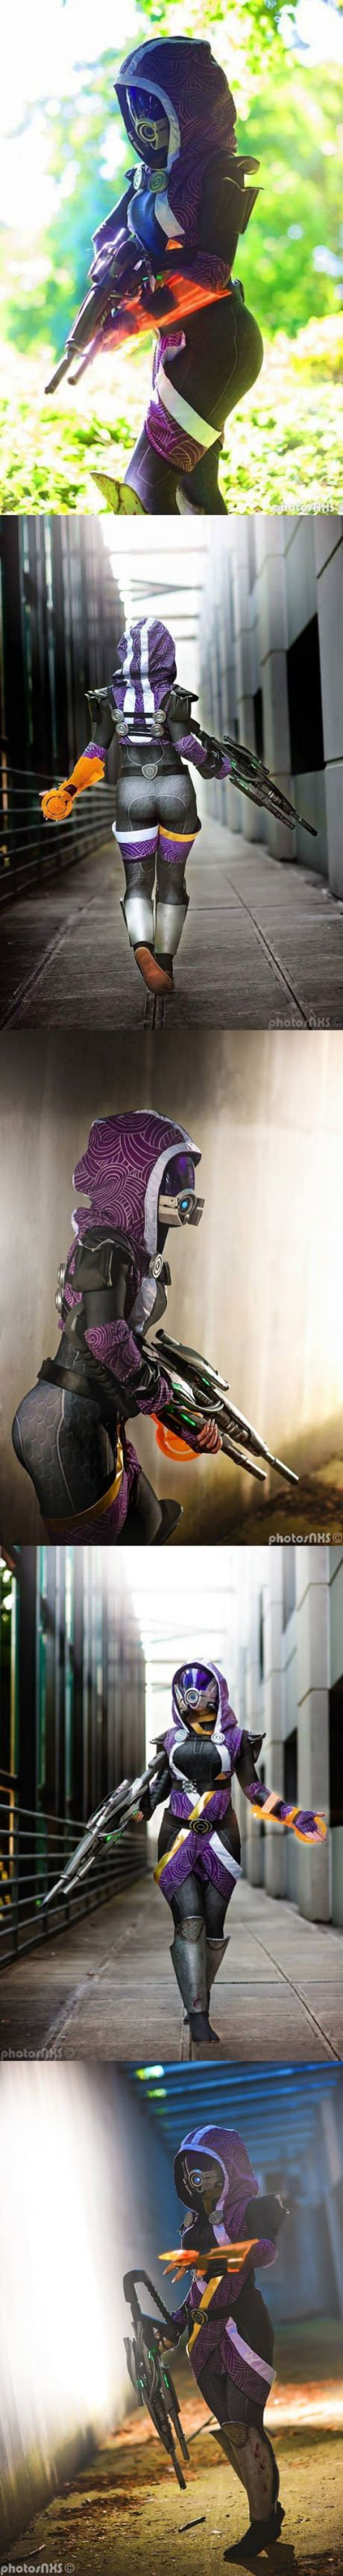 Tali cosplay by Jenna Lynn